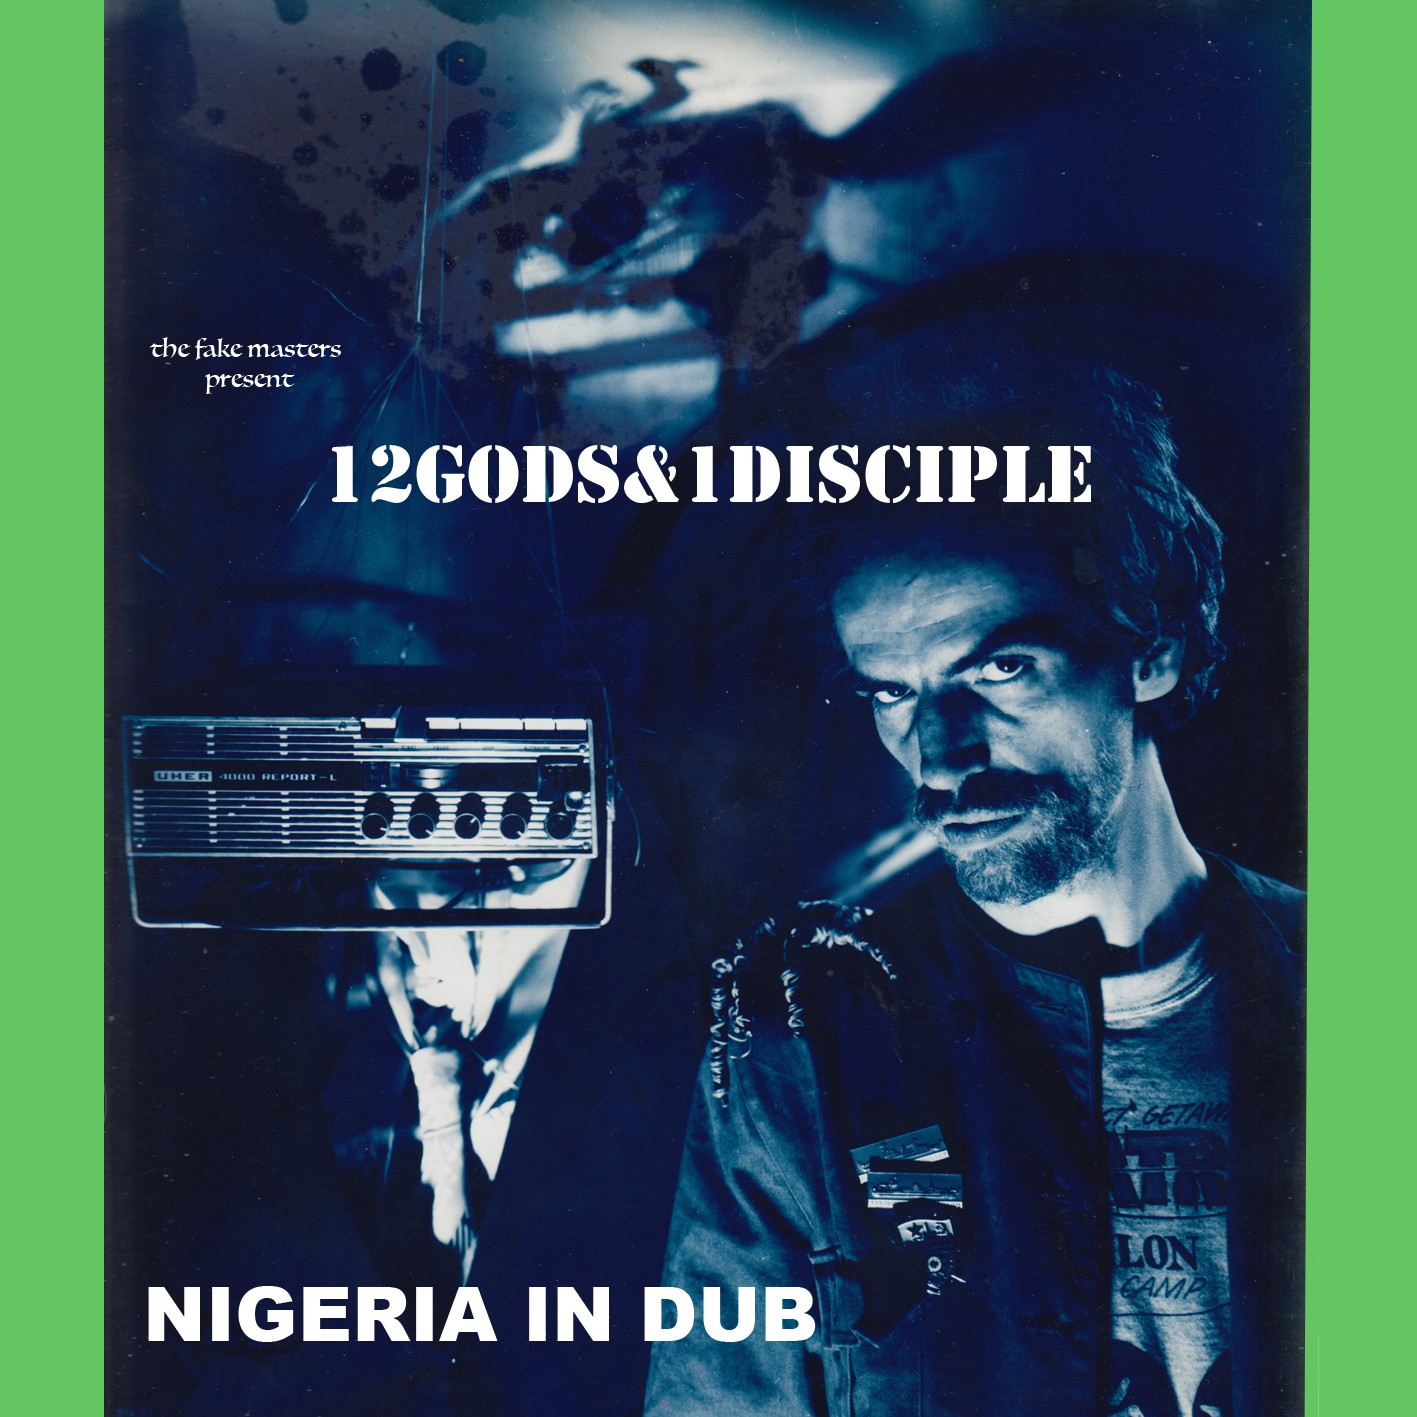 12gods&1disciple – Nigeria in Dub